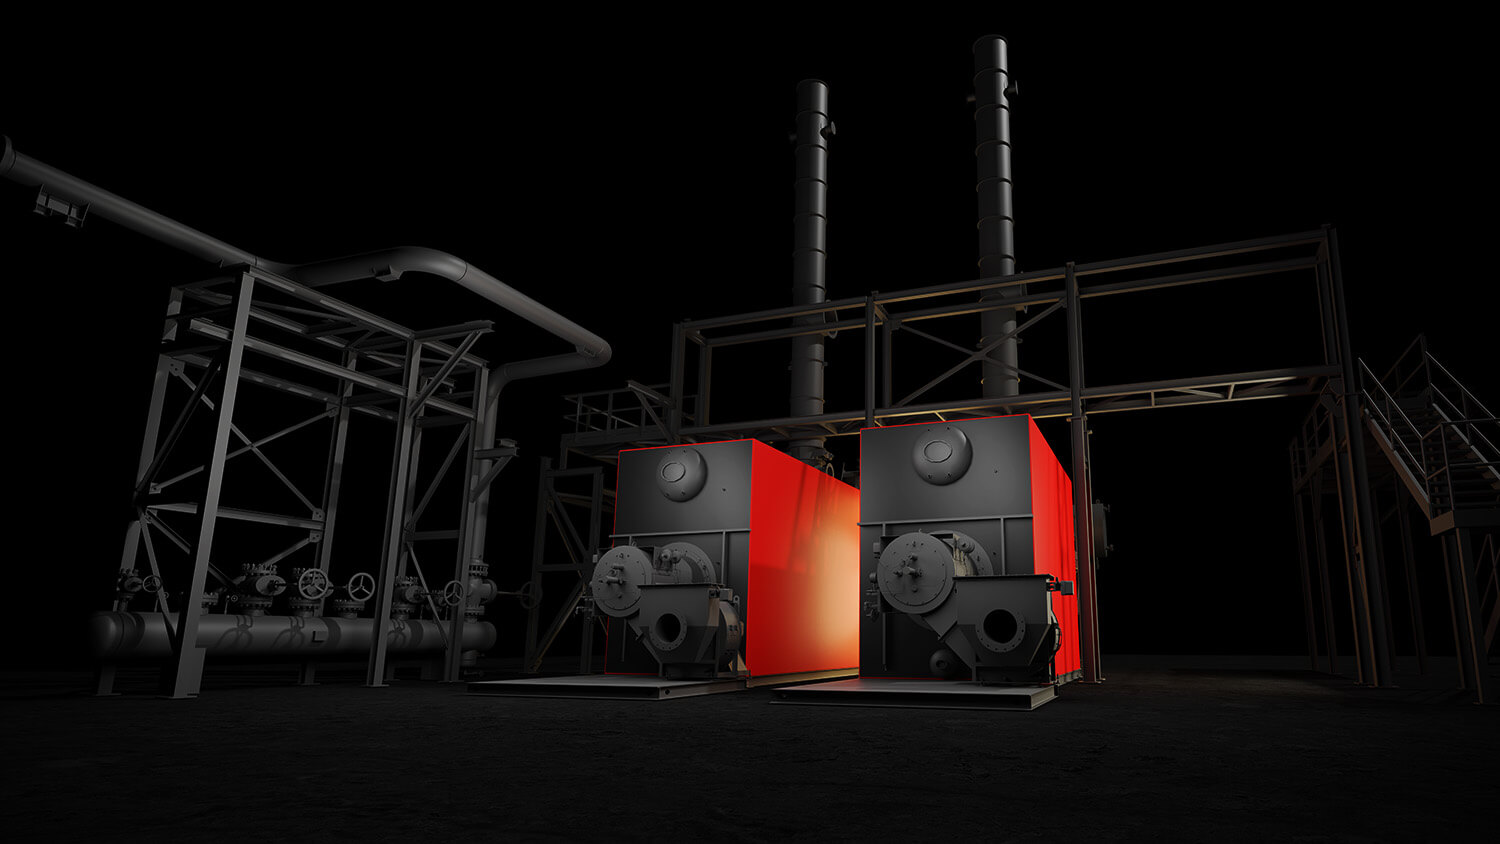 Design and operate the boiler room of the future